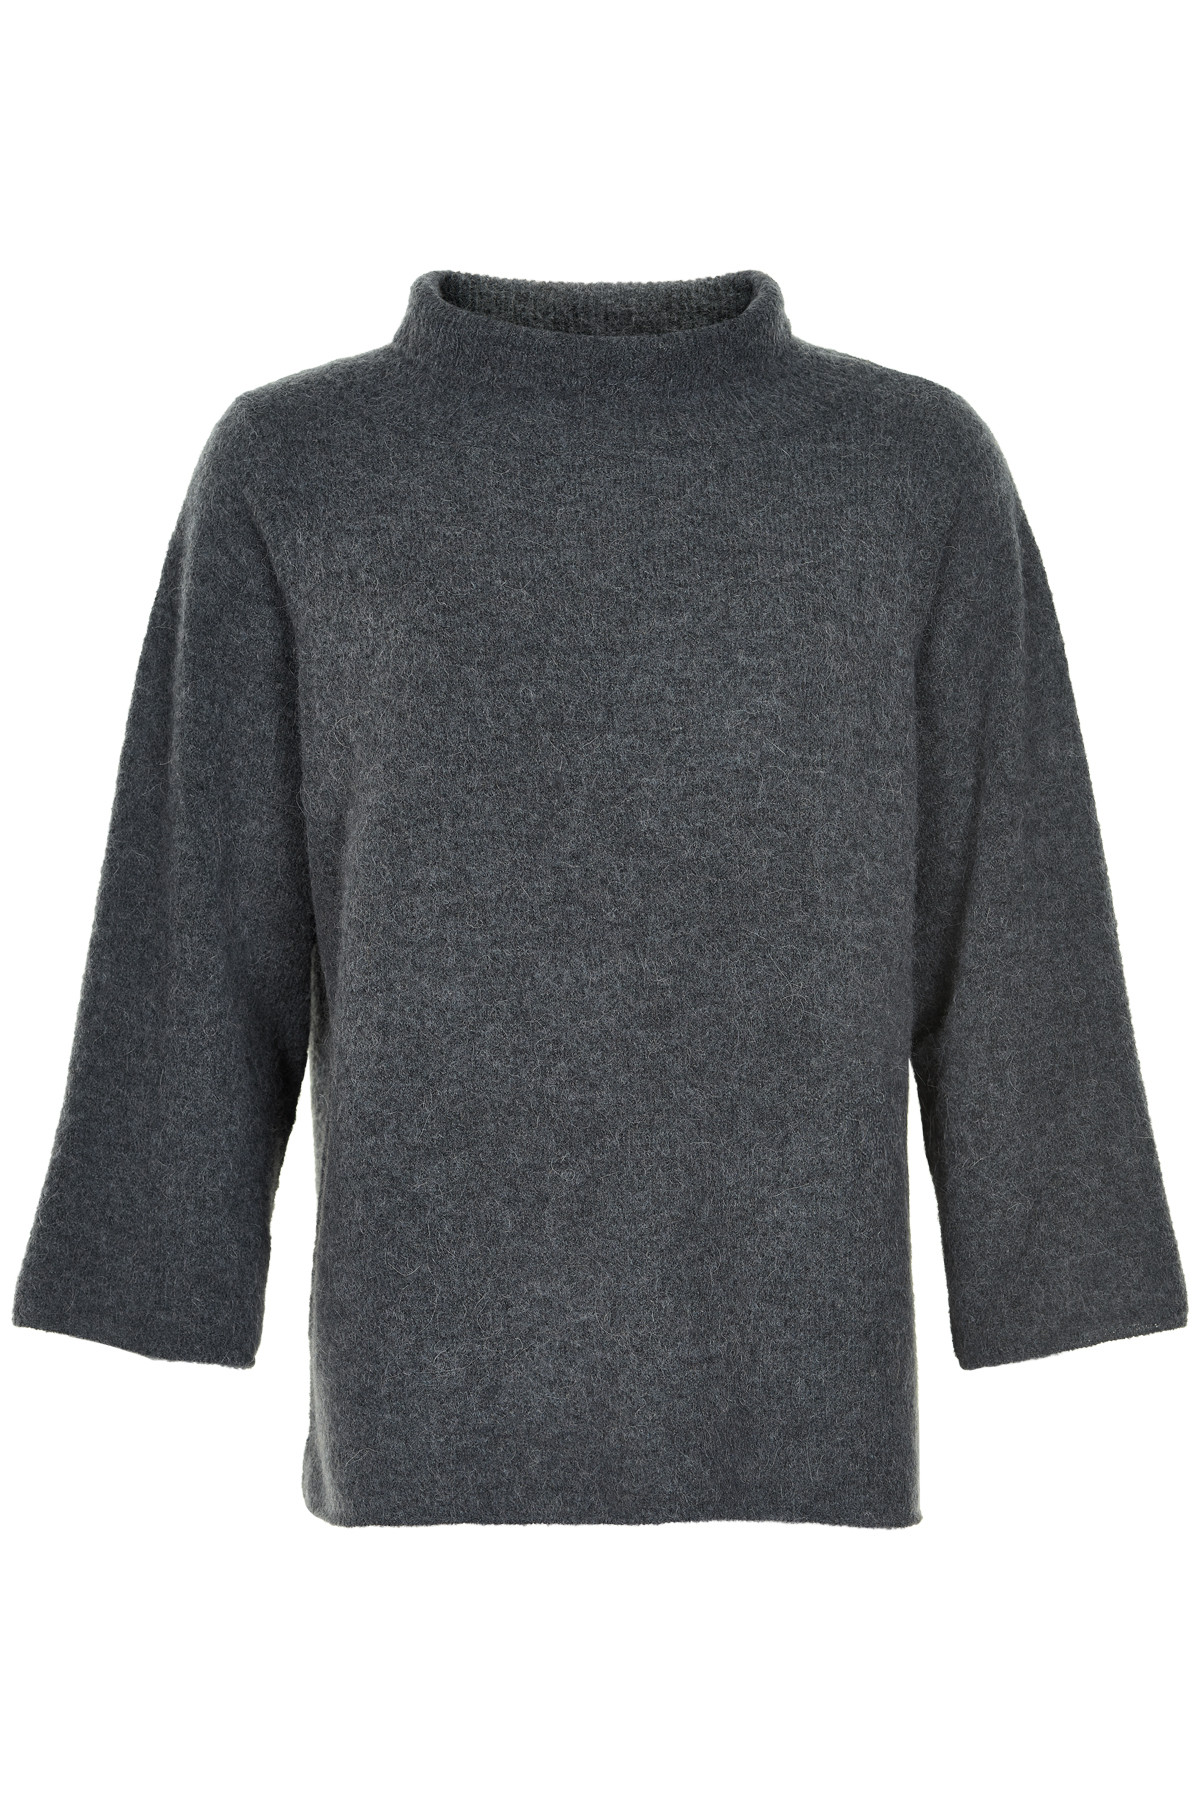 Image of   AND LESS ALELENORE PULLOVER 5519204 (Folkstone, M)